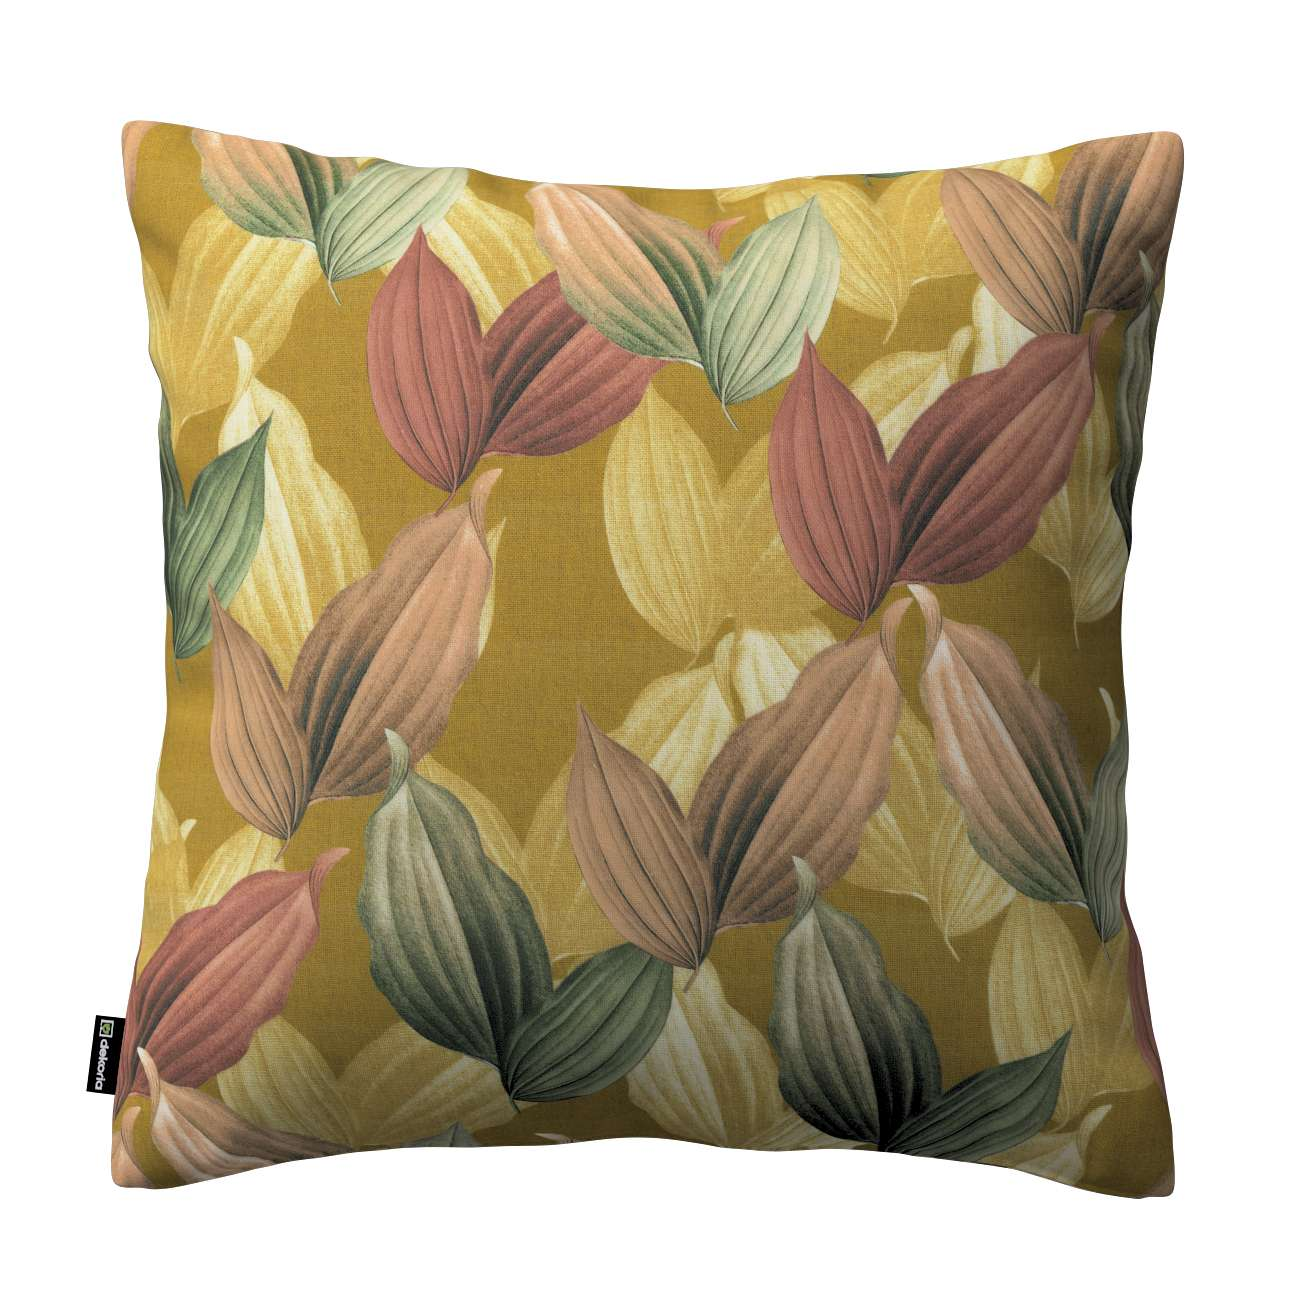 Kinga cushion cover in collection Abigail, fabric: 143-22